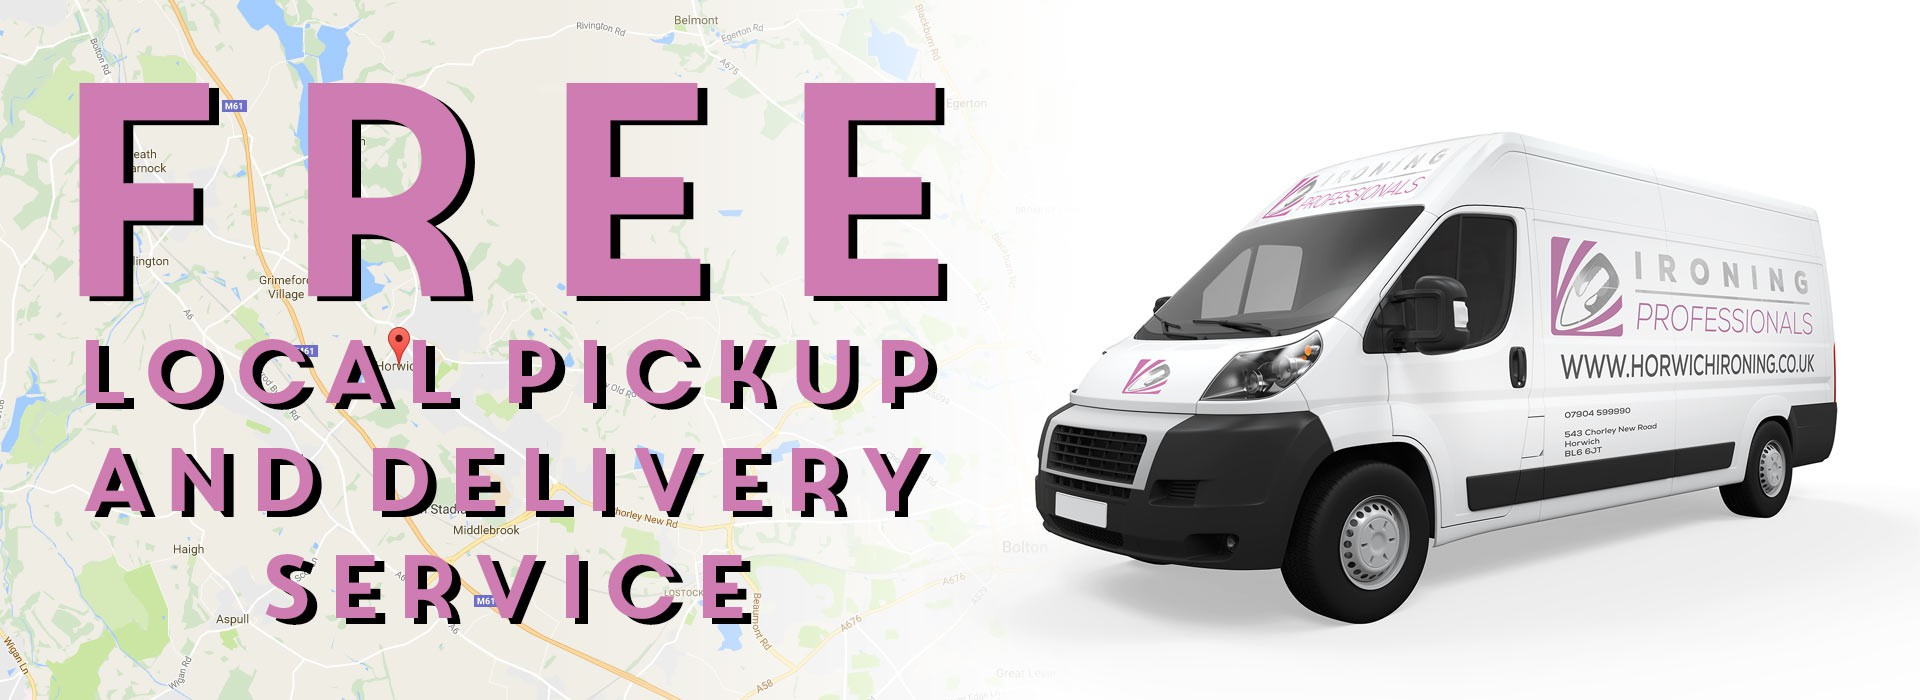 Free local pickup and delivery service